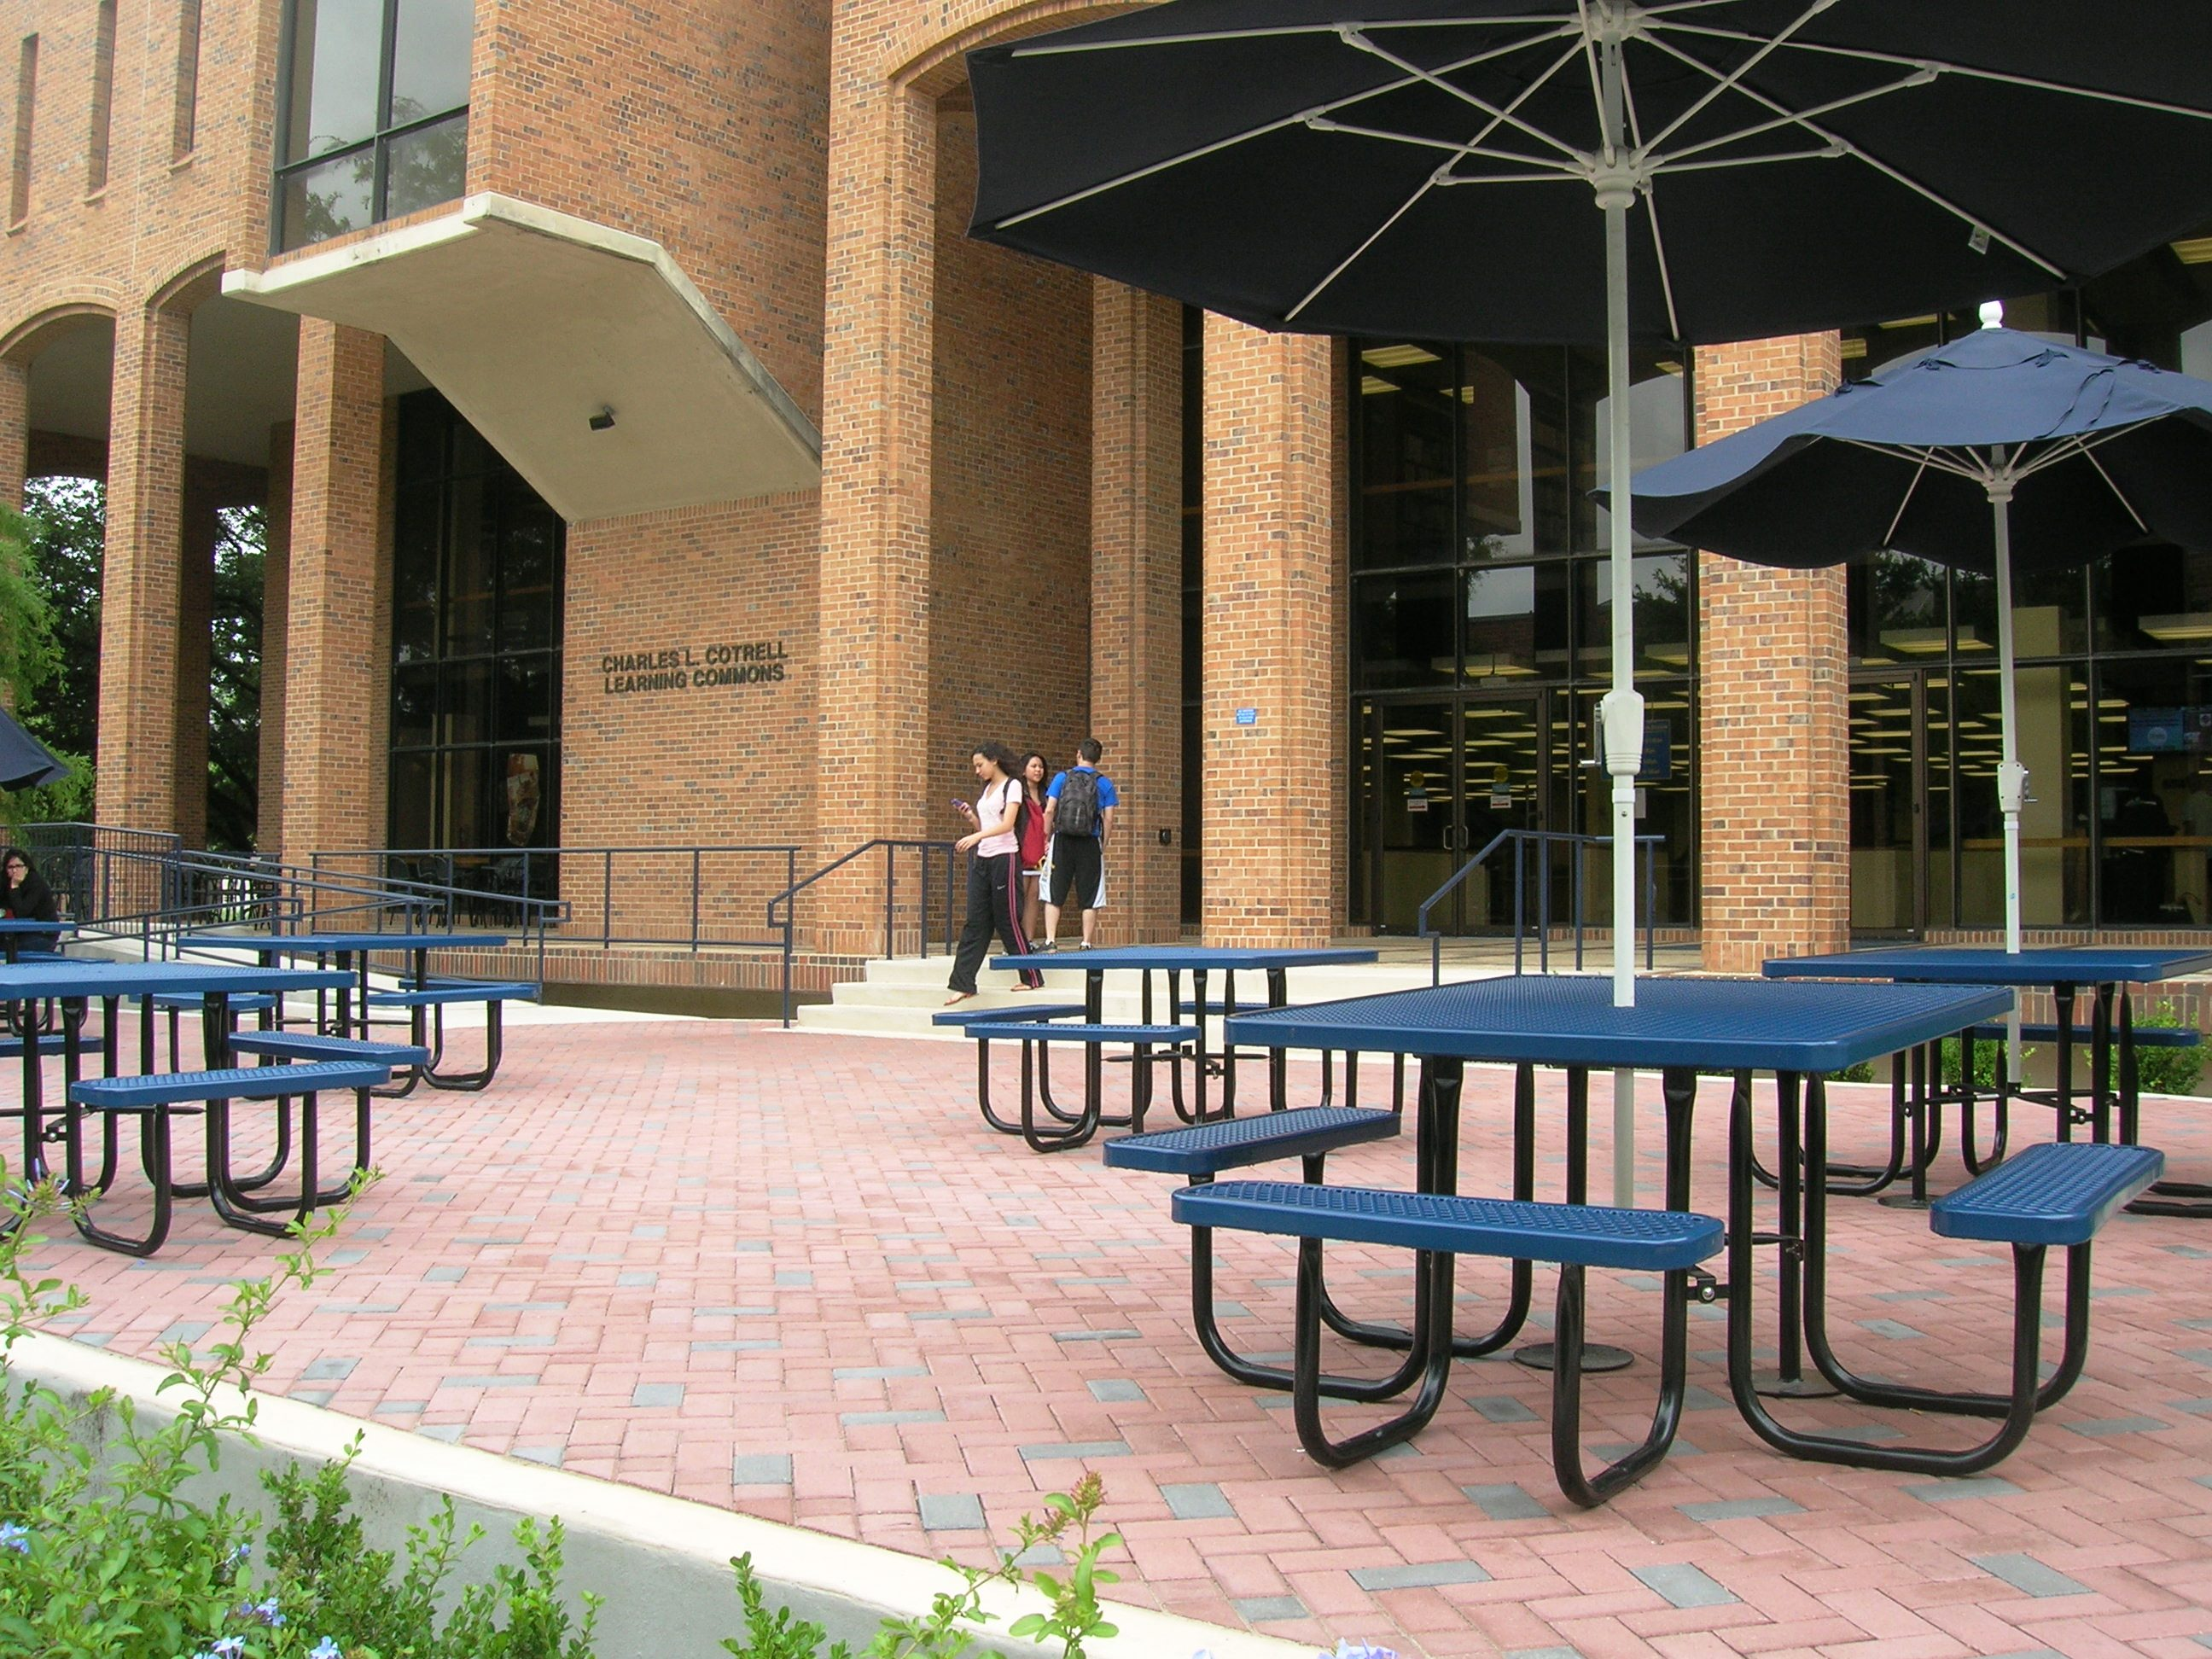 south entrance of library